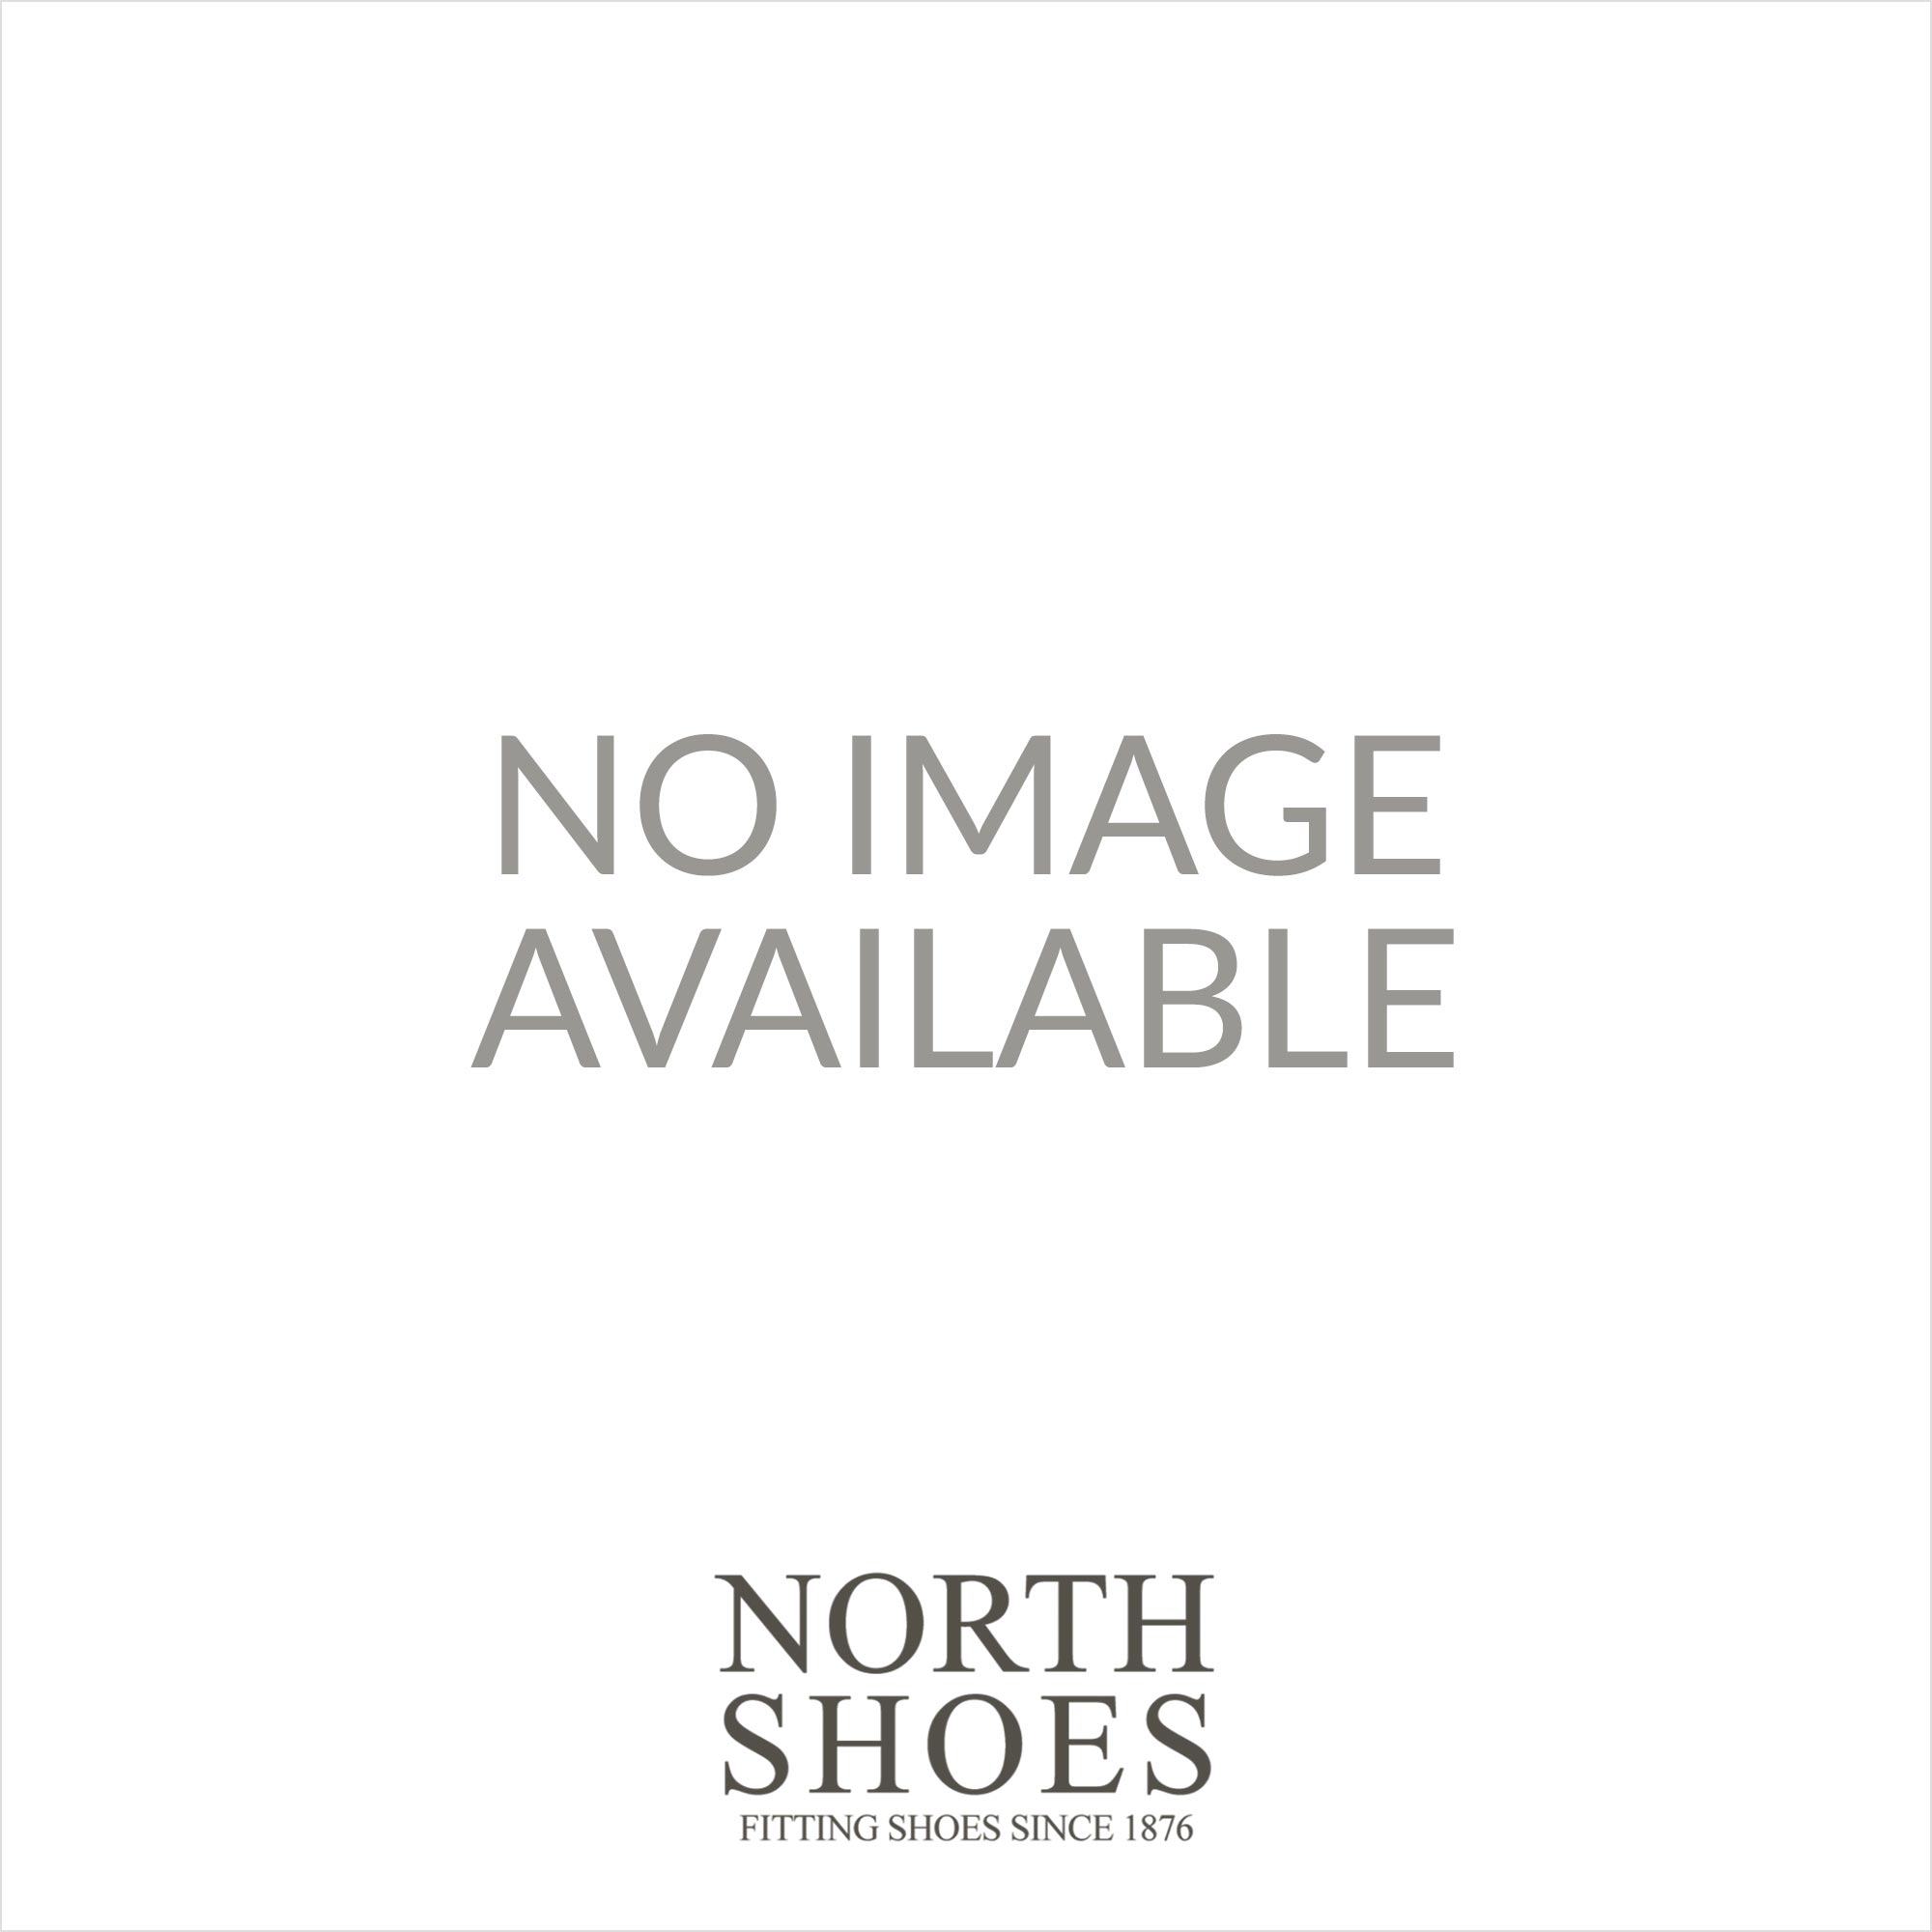 e282b86808fde Maren 06 Olive Green Leather Womens Lace/Zip Up Ankle Boots - UK 8. Josef  Seibel ...